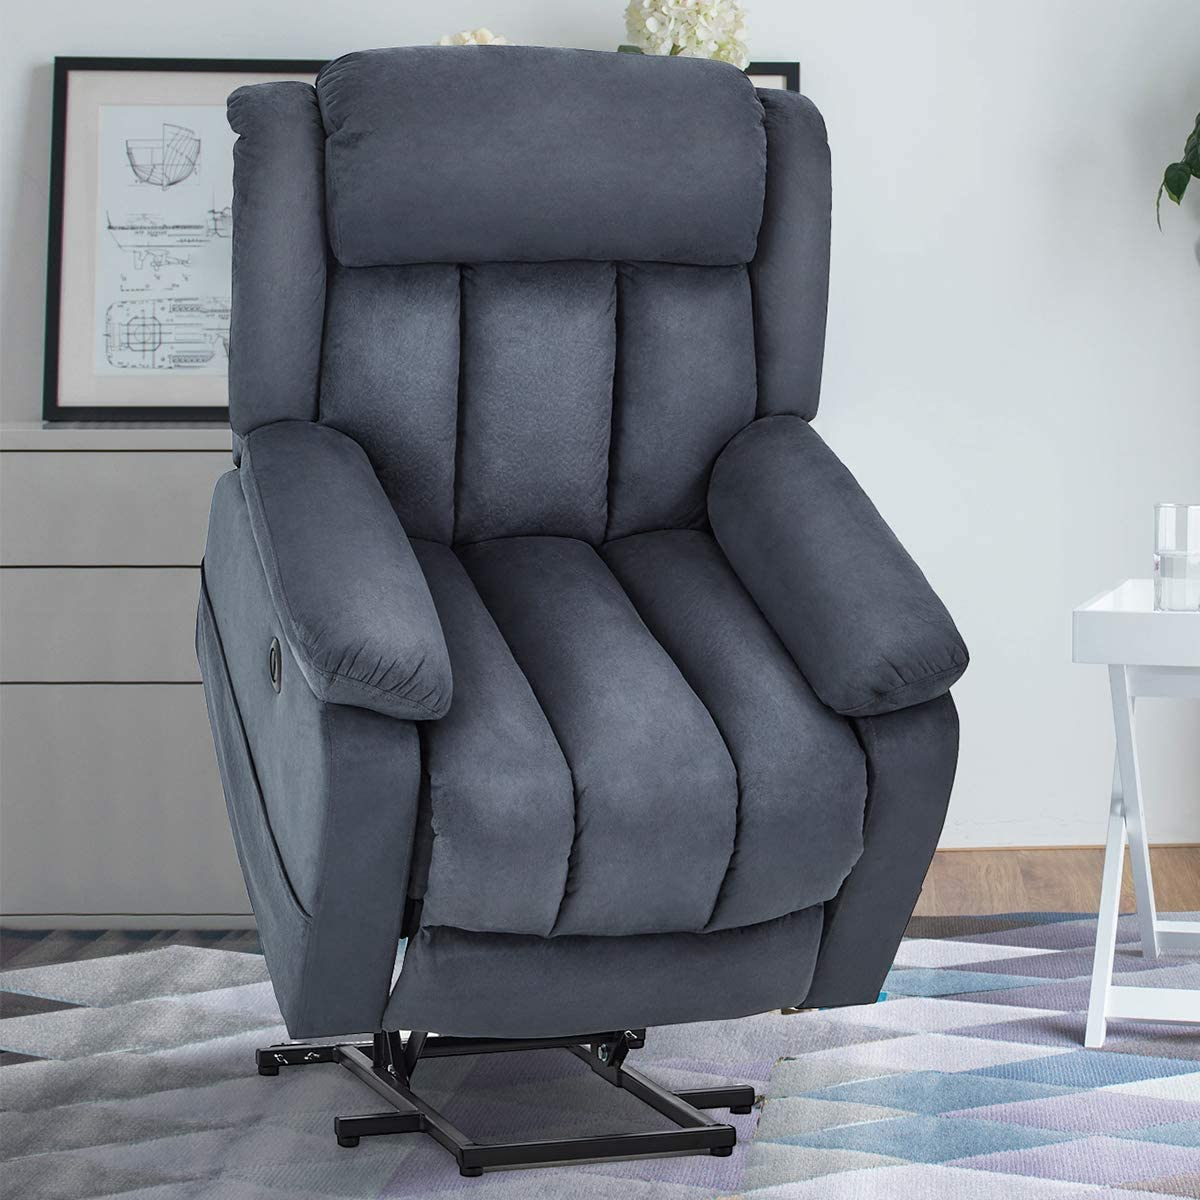 Esright Power Lift Chair Electric Recliner Sofa for Elderly, Microfiber Electric Recliner Chair with Heated Vibration Massage, Side Pocket and USB Port, Blue Gray